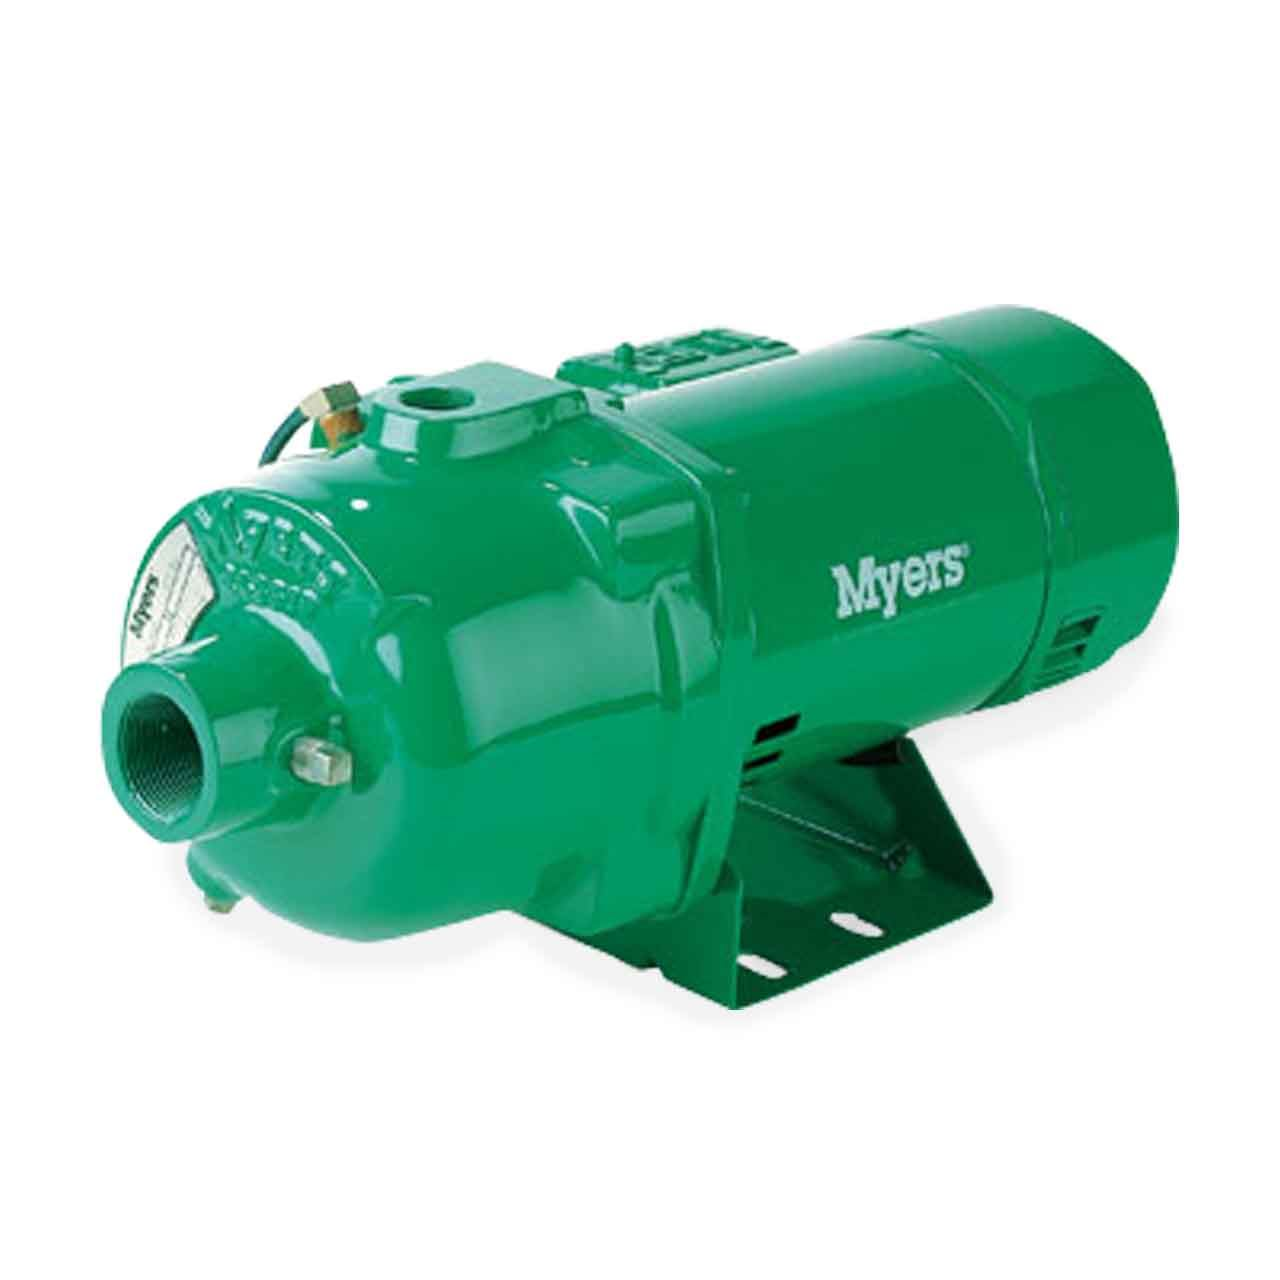 myers myers hr50s series convertible jet pumps 0 5 hp 115 230v rh rcworst com Meyer E-47 Wiring-Diagram Basic Electrical Wiring Diagrams